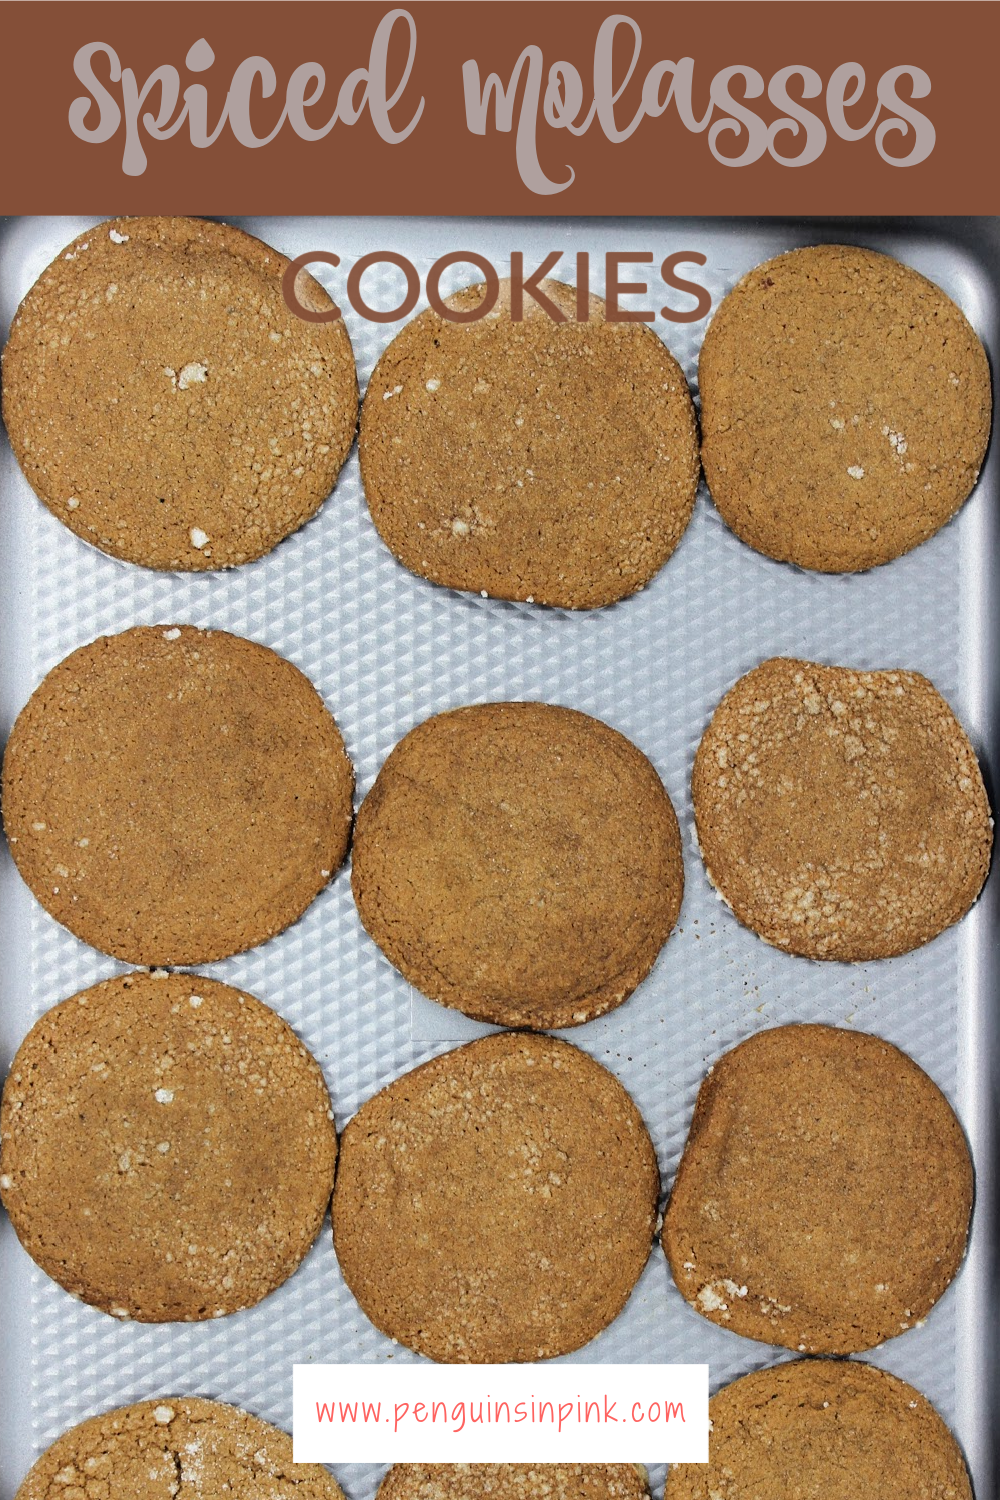 These spiced molasses cookies are amazing. Soft and chewy on the inside and crispy on the outside. Cinnamon, nutmeg, and molasses spice up these sweet cookies.